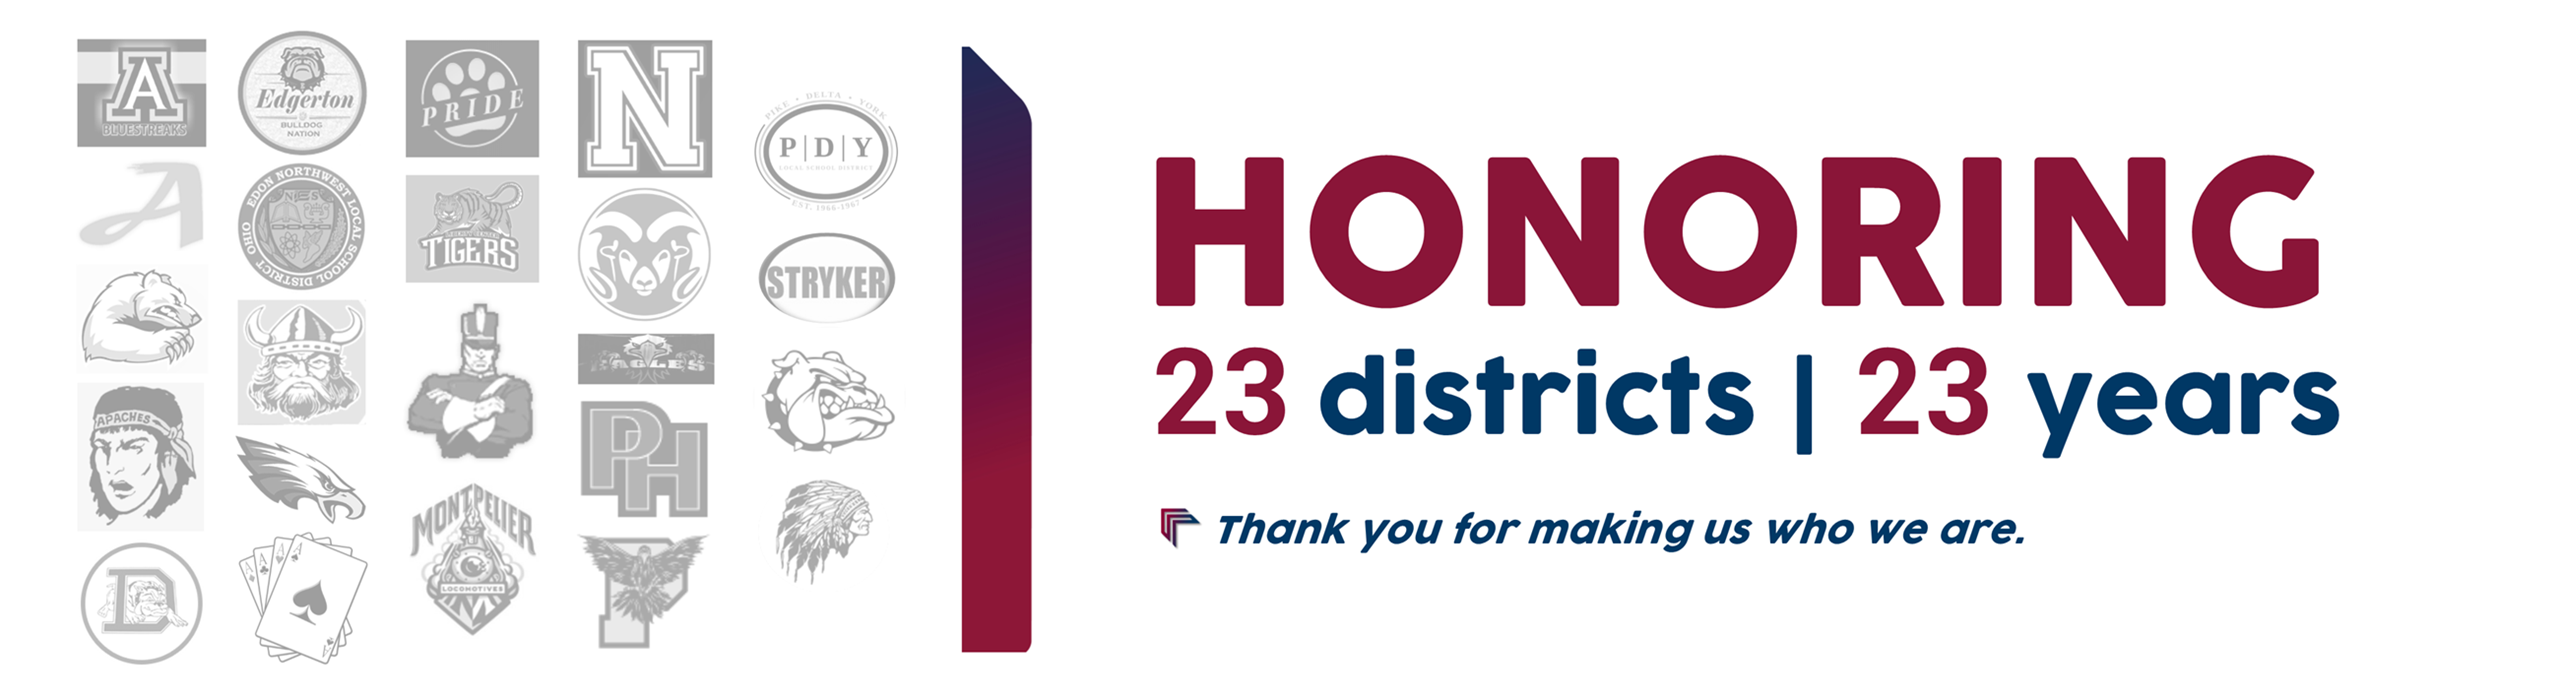 Honoring 23 districts